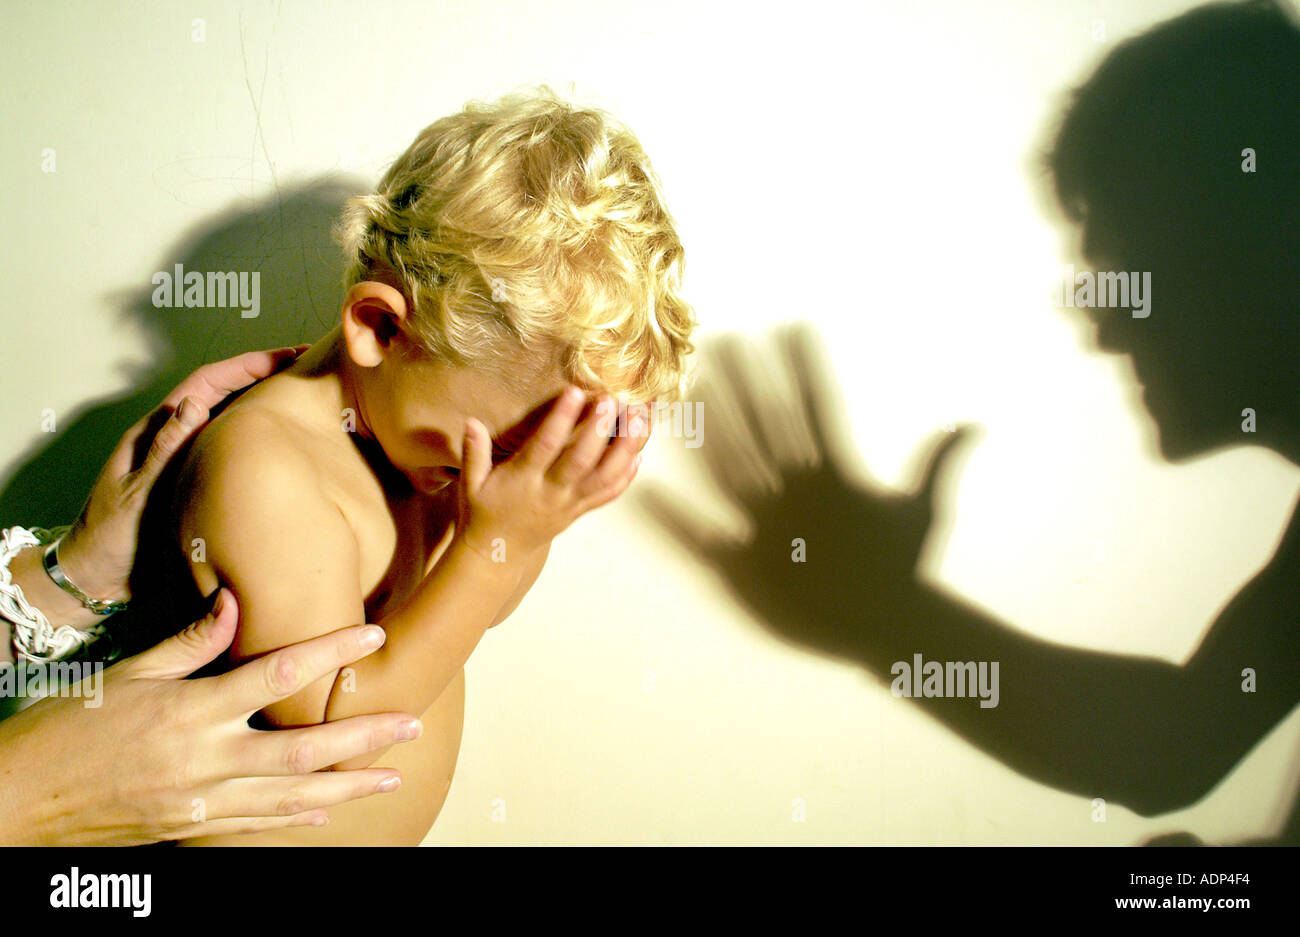 A terrified tearful child threatened with abuse being comforted by female hands and menaced by a man - Stock Image